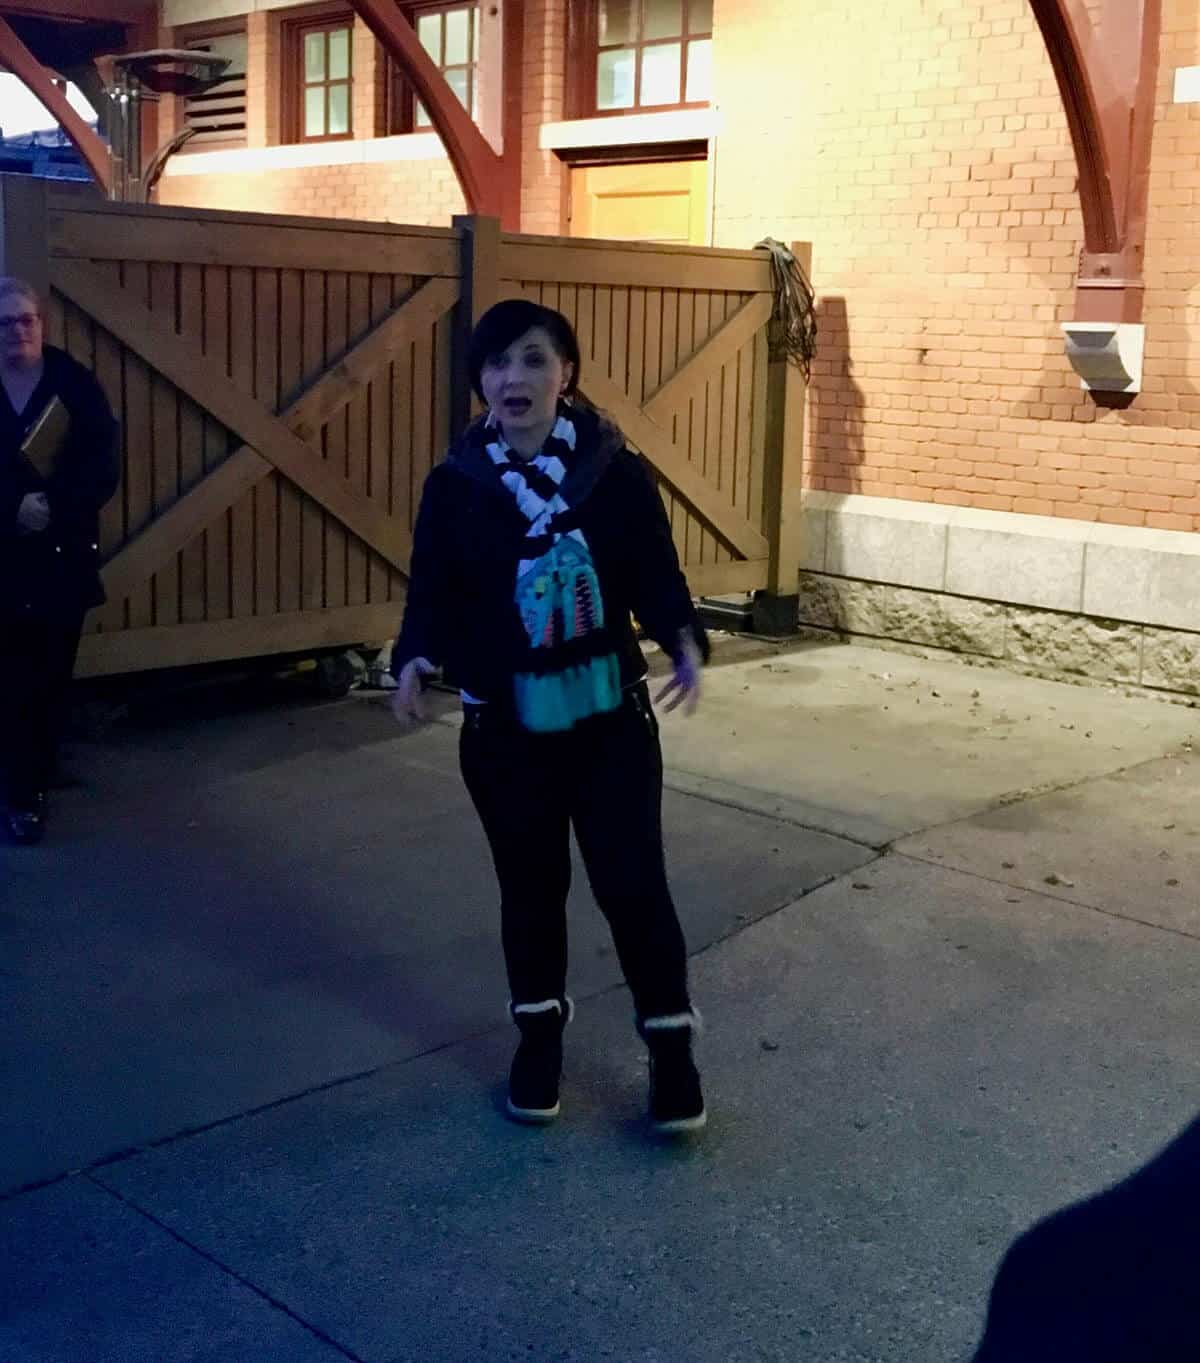 Morgan Knudsen, Woman, Outside MKT, Ghost Tour, Paranormal Tour, Paranormal Investigator